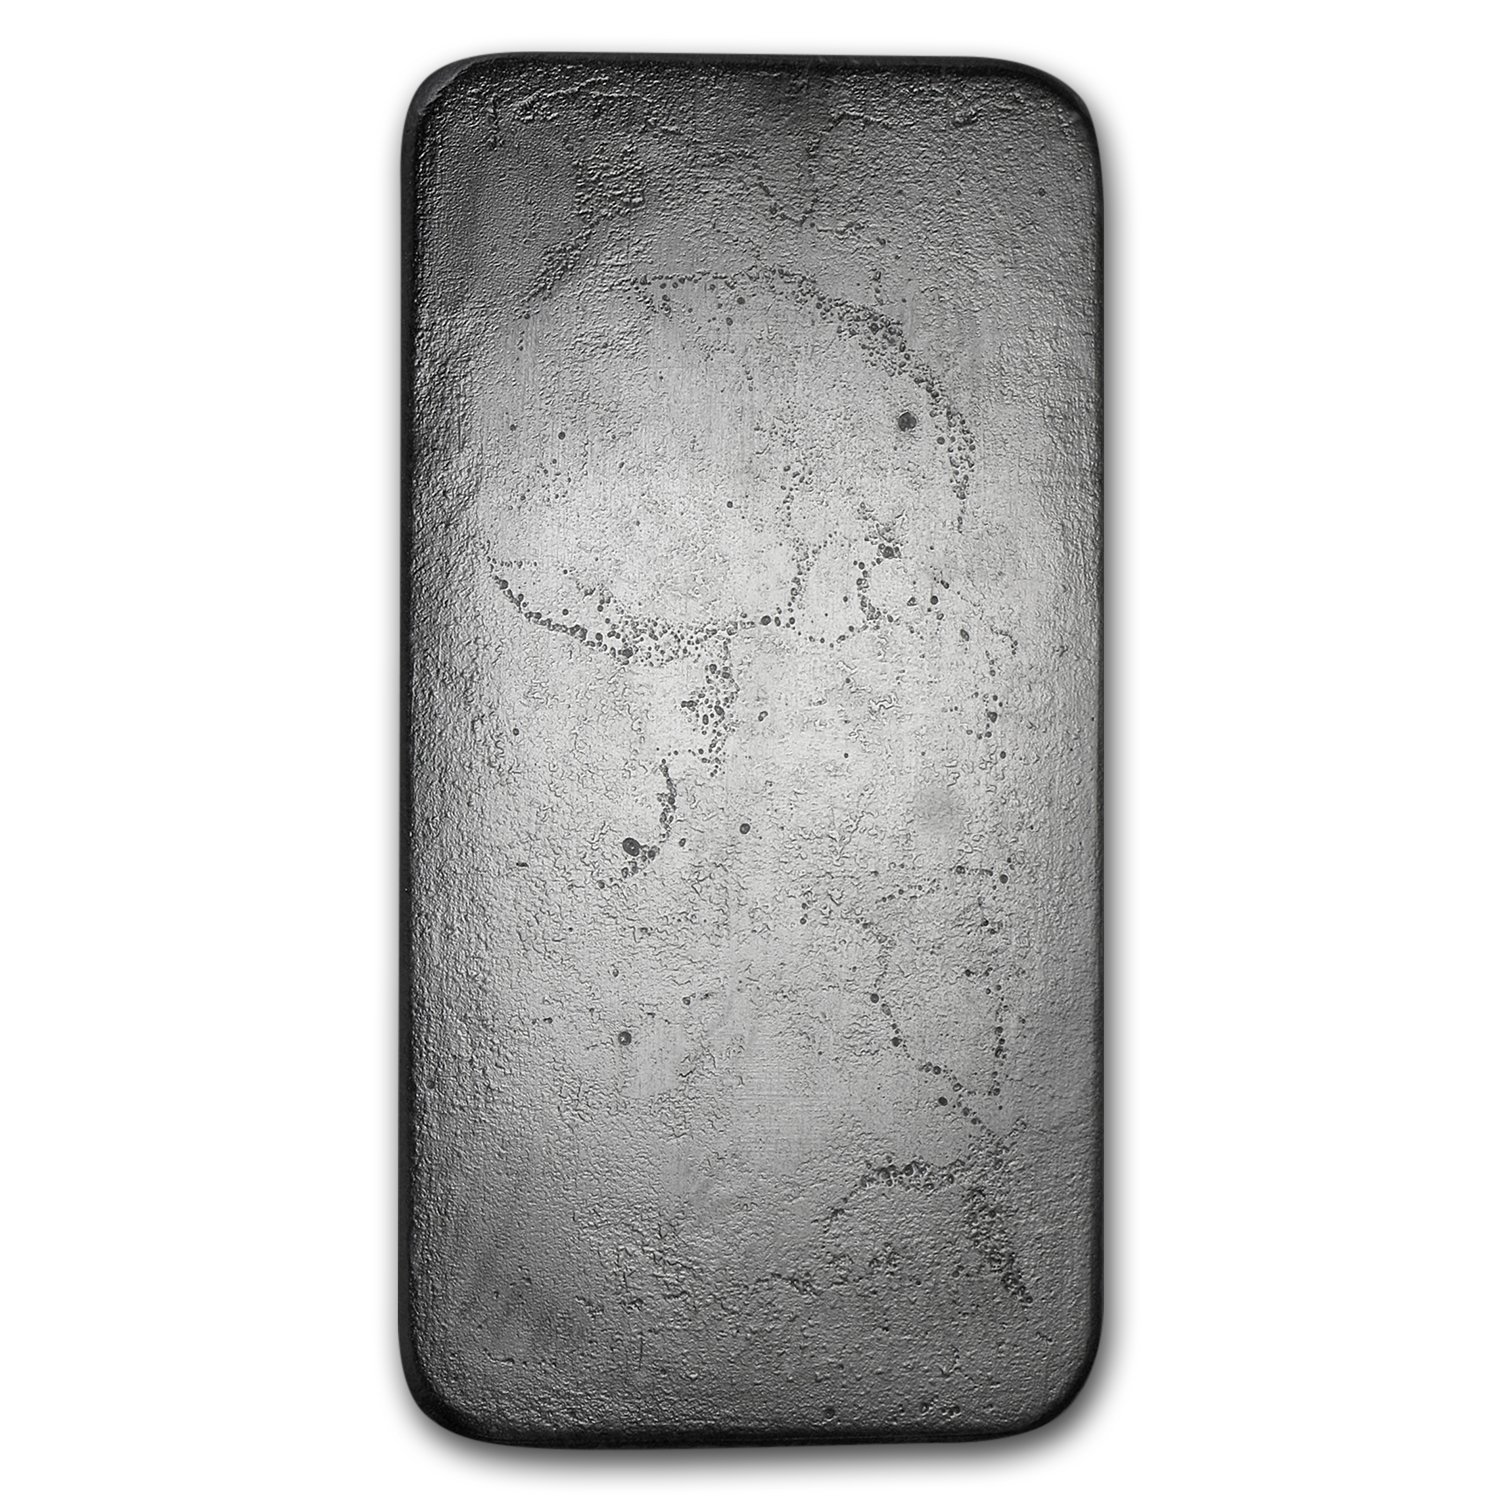 1 Kilo Silver Bar Southern Cross Bullion Cast Kilo